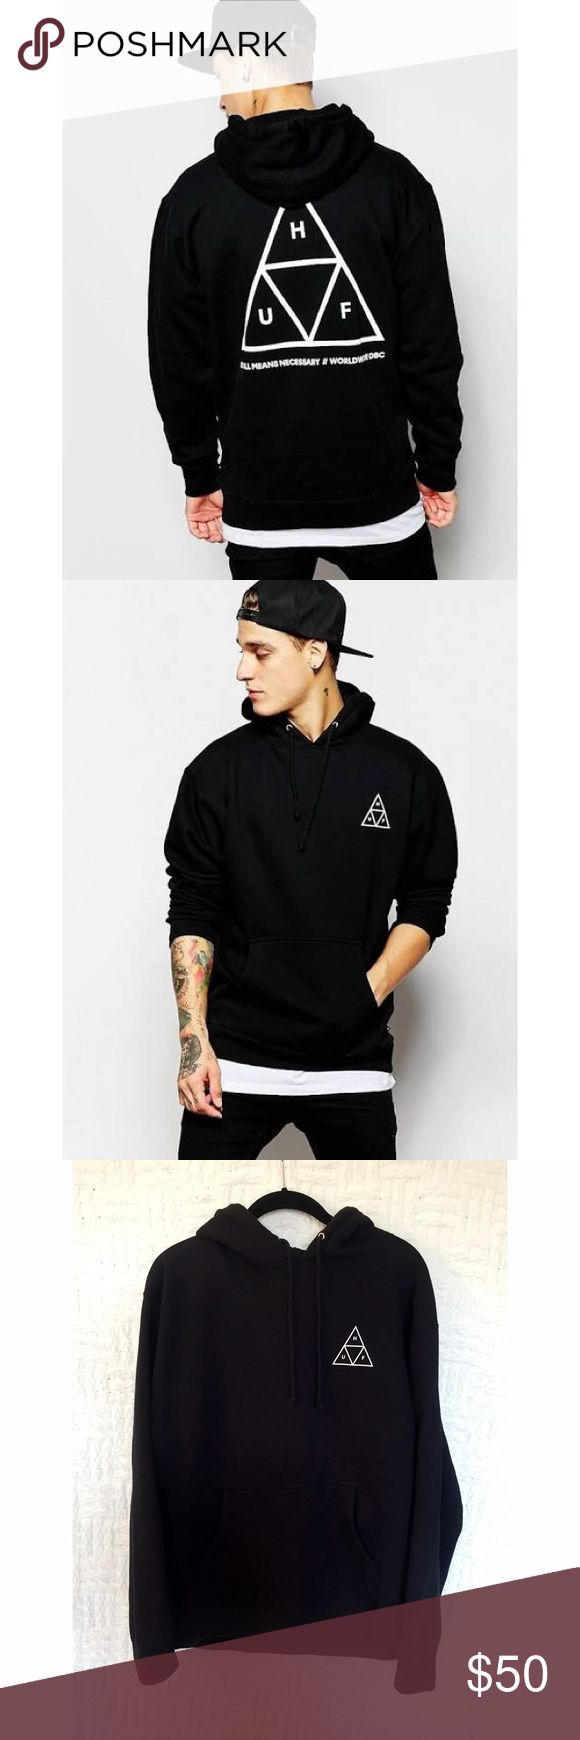 HUF Triple Triangle Hoodie HUF Triple Triangle hoodie in black. Men's size medium; I wore it as a women's medium / large. Great condition, only worn a handful of times. No trades. HUF Shirts Sweatshirts & Hoodies